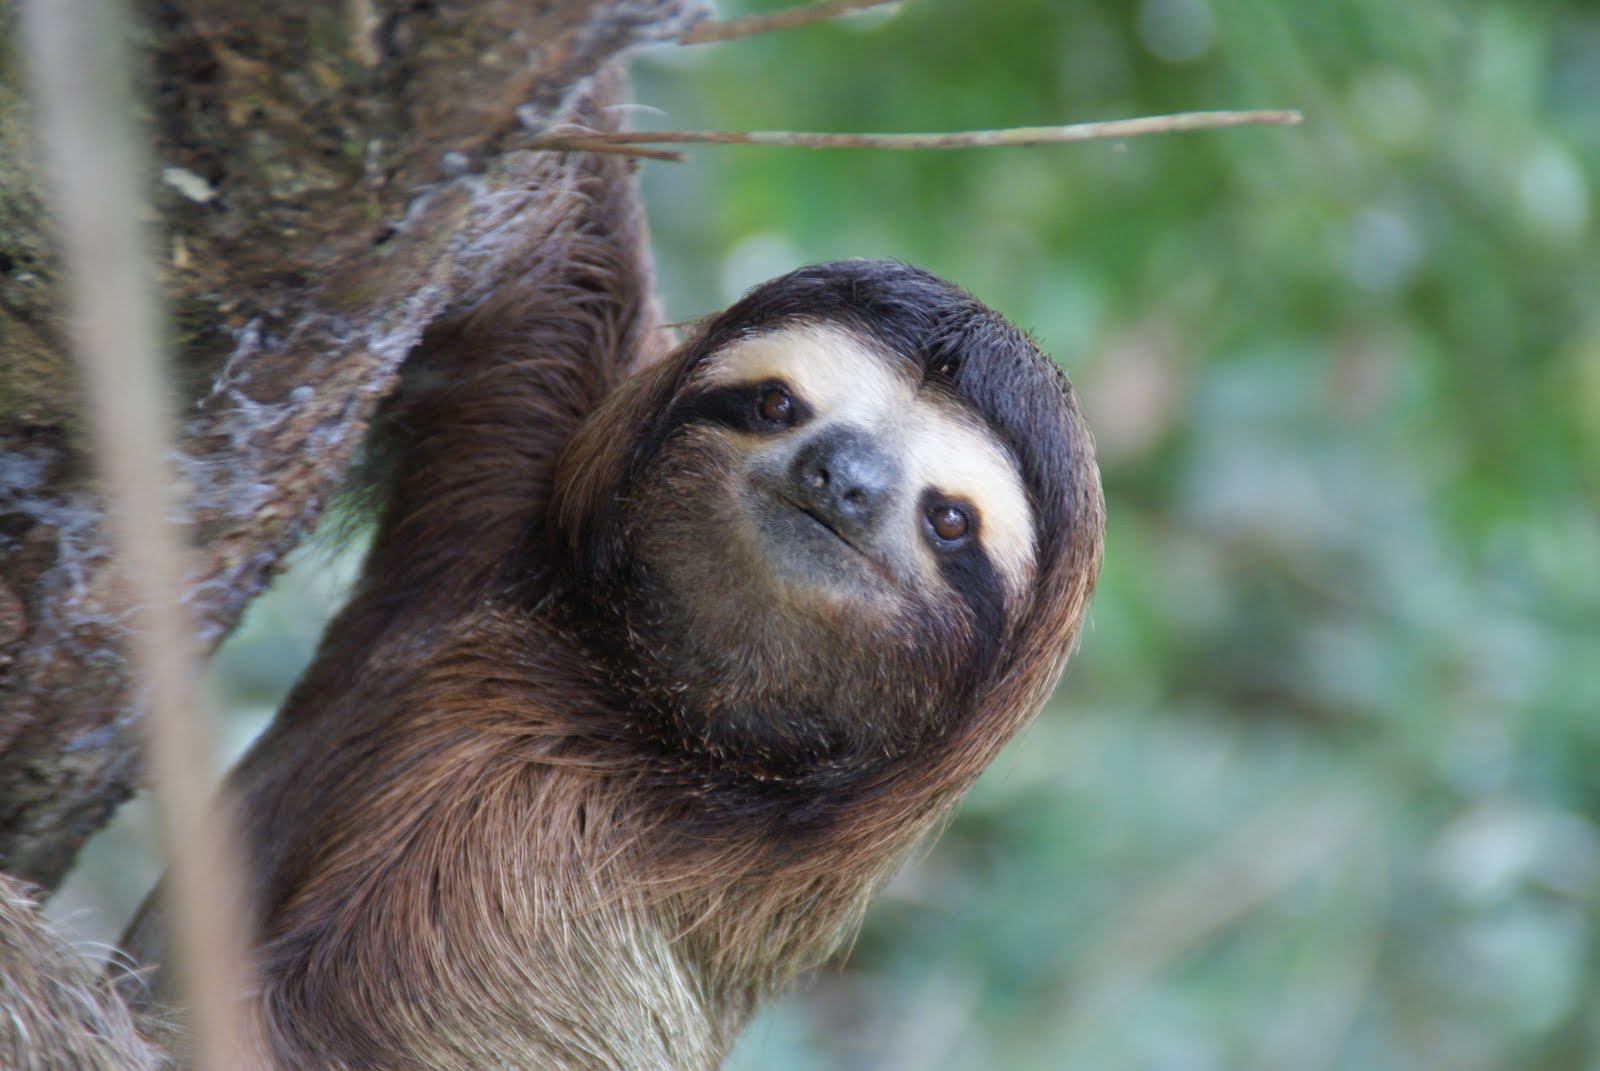 sloth pictures on animal picture society